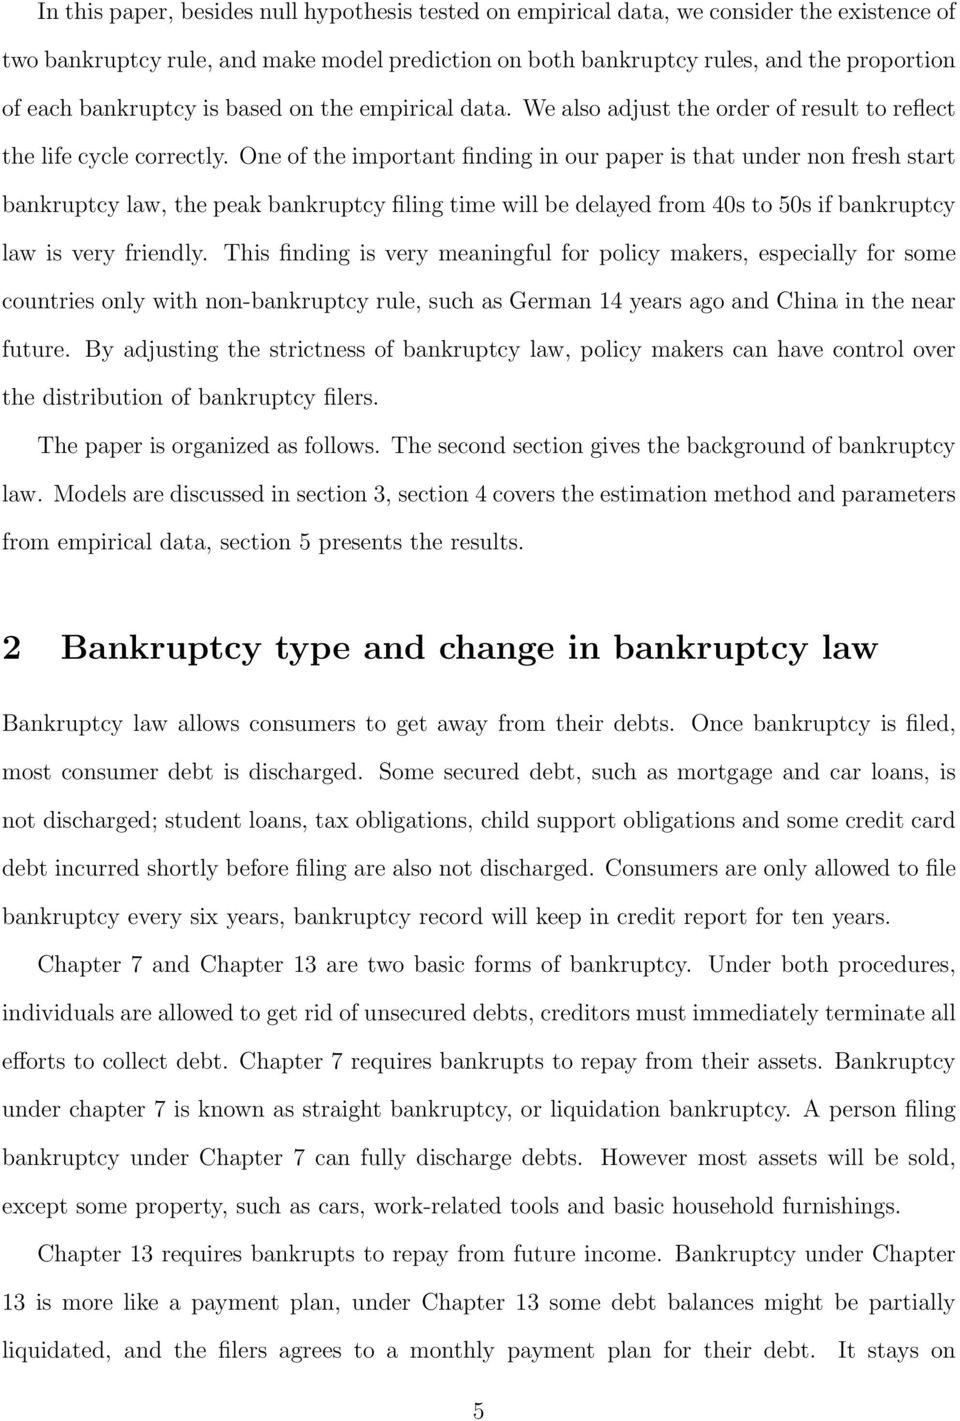 One of the important finding in our paper is that under non fresh start bankruptcy law, the peak bankruptcy filing time will be delayed from 40s to 50s if bankruptcy law is very friendly.